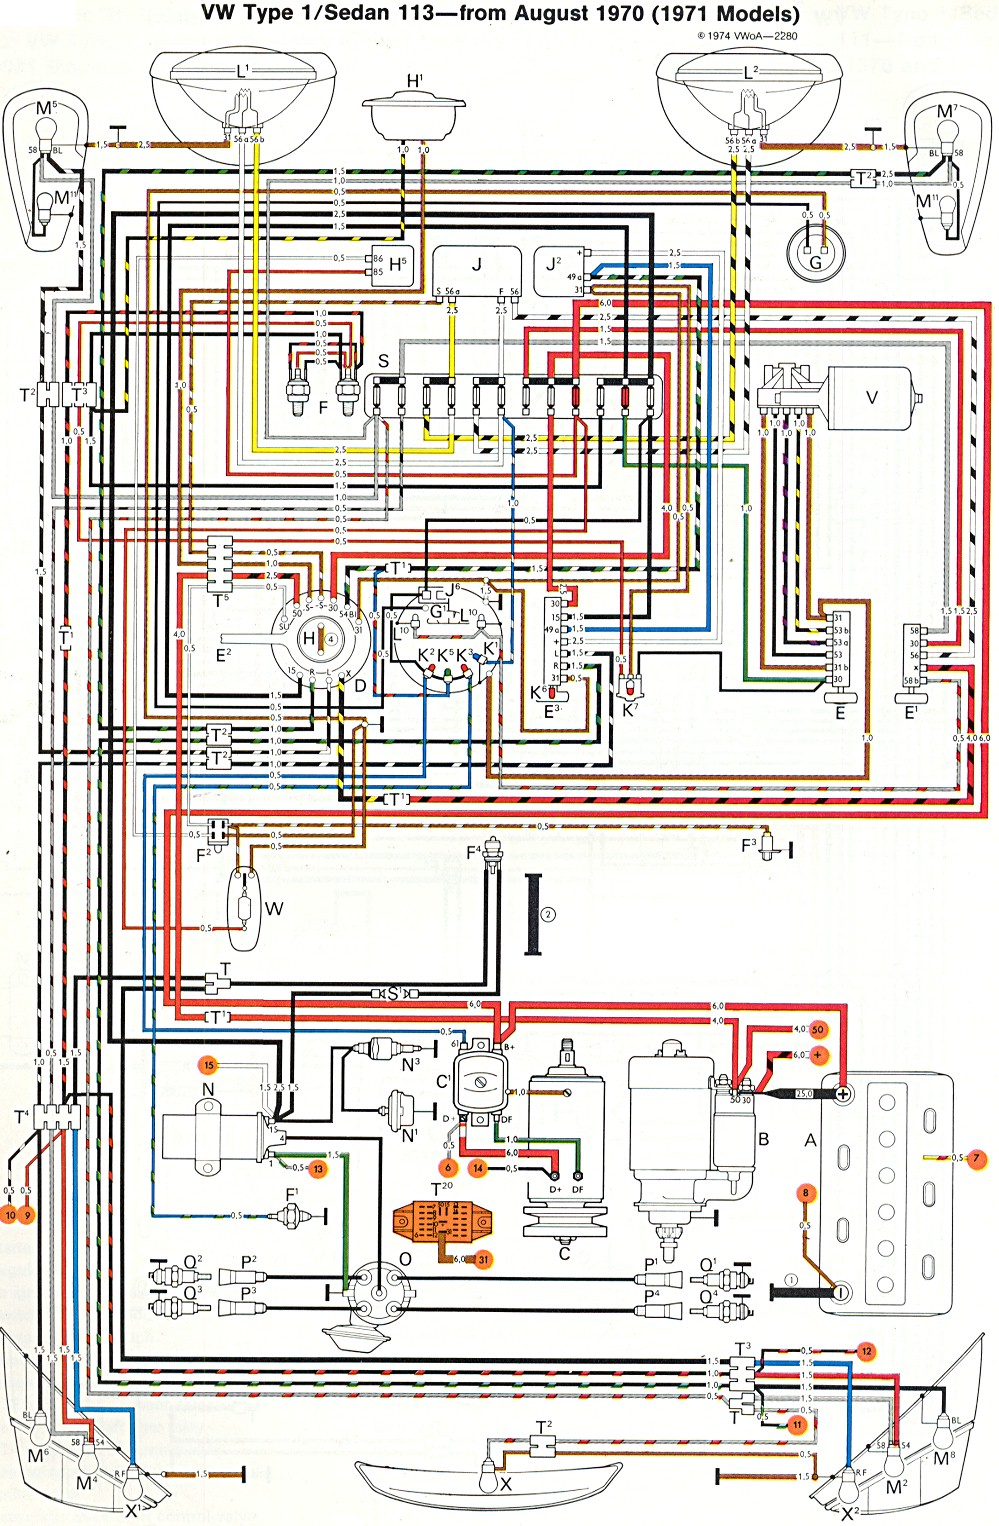 2000 Vw Passat Fuse Diagram Wiring Library 2007 1971 Volkswagen Simple Panel